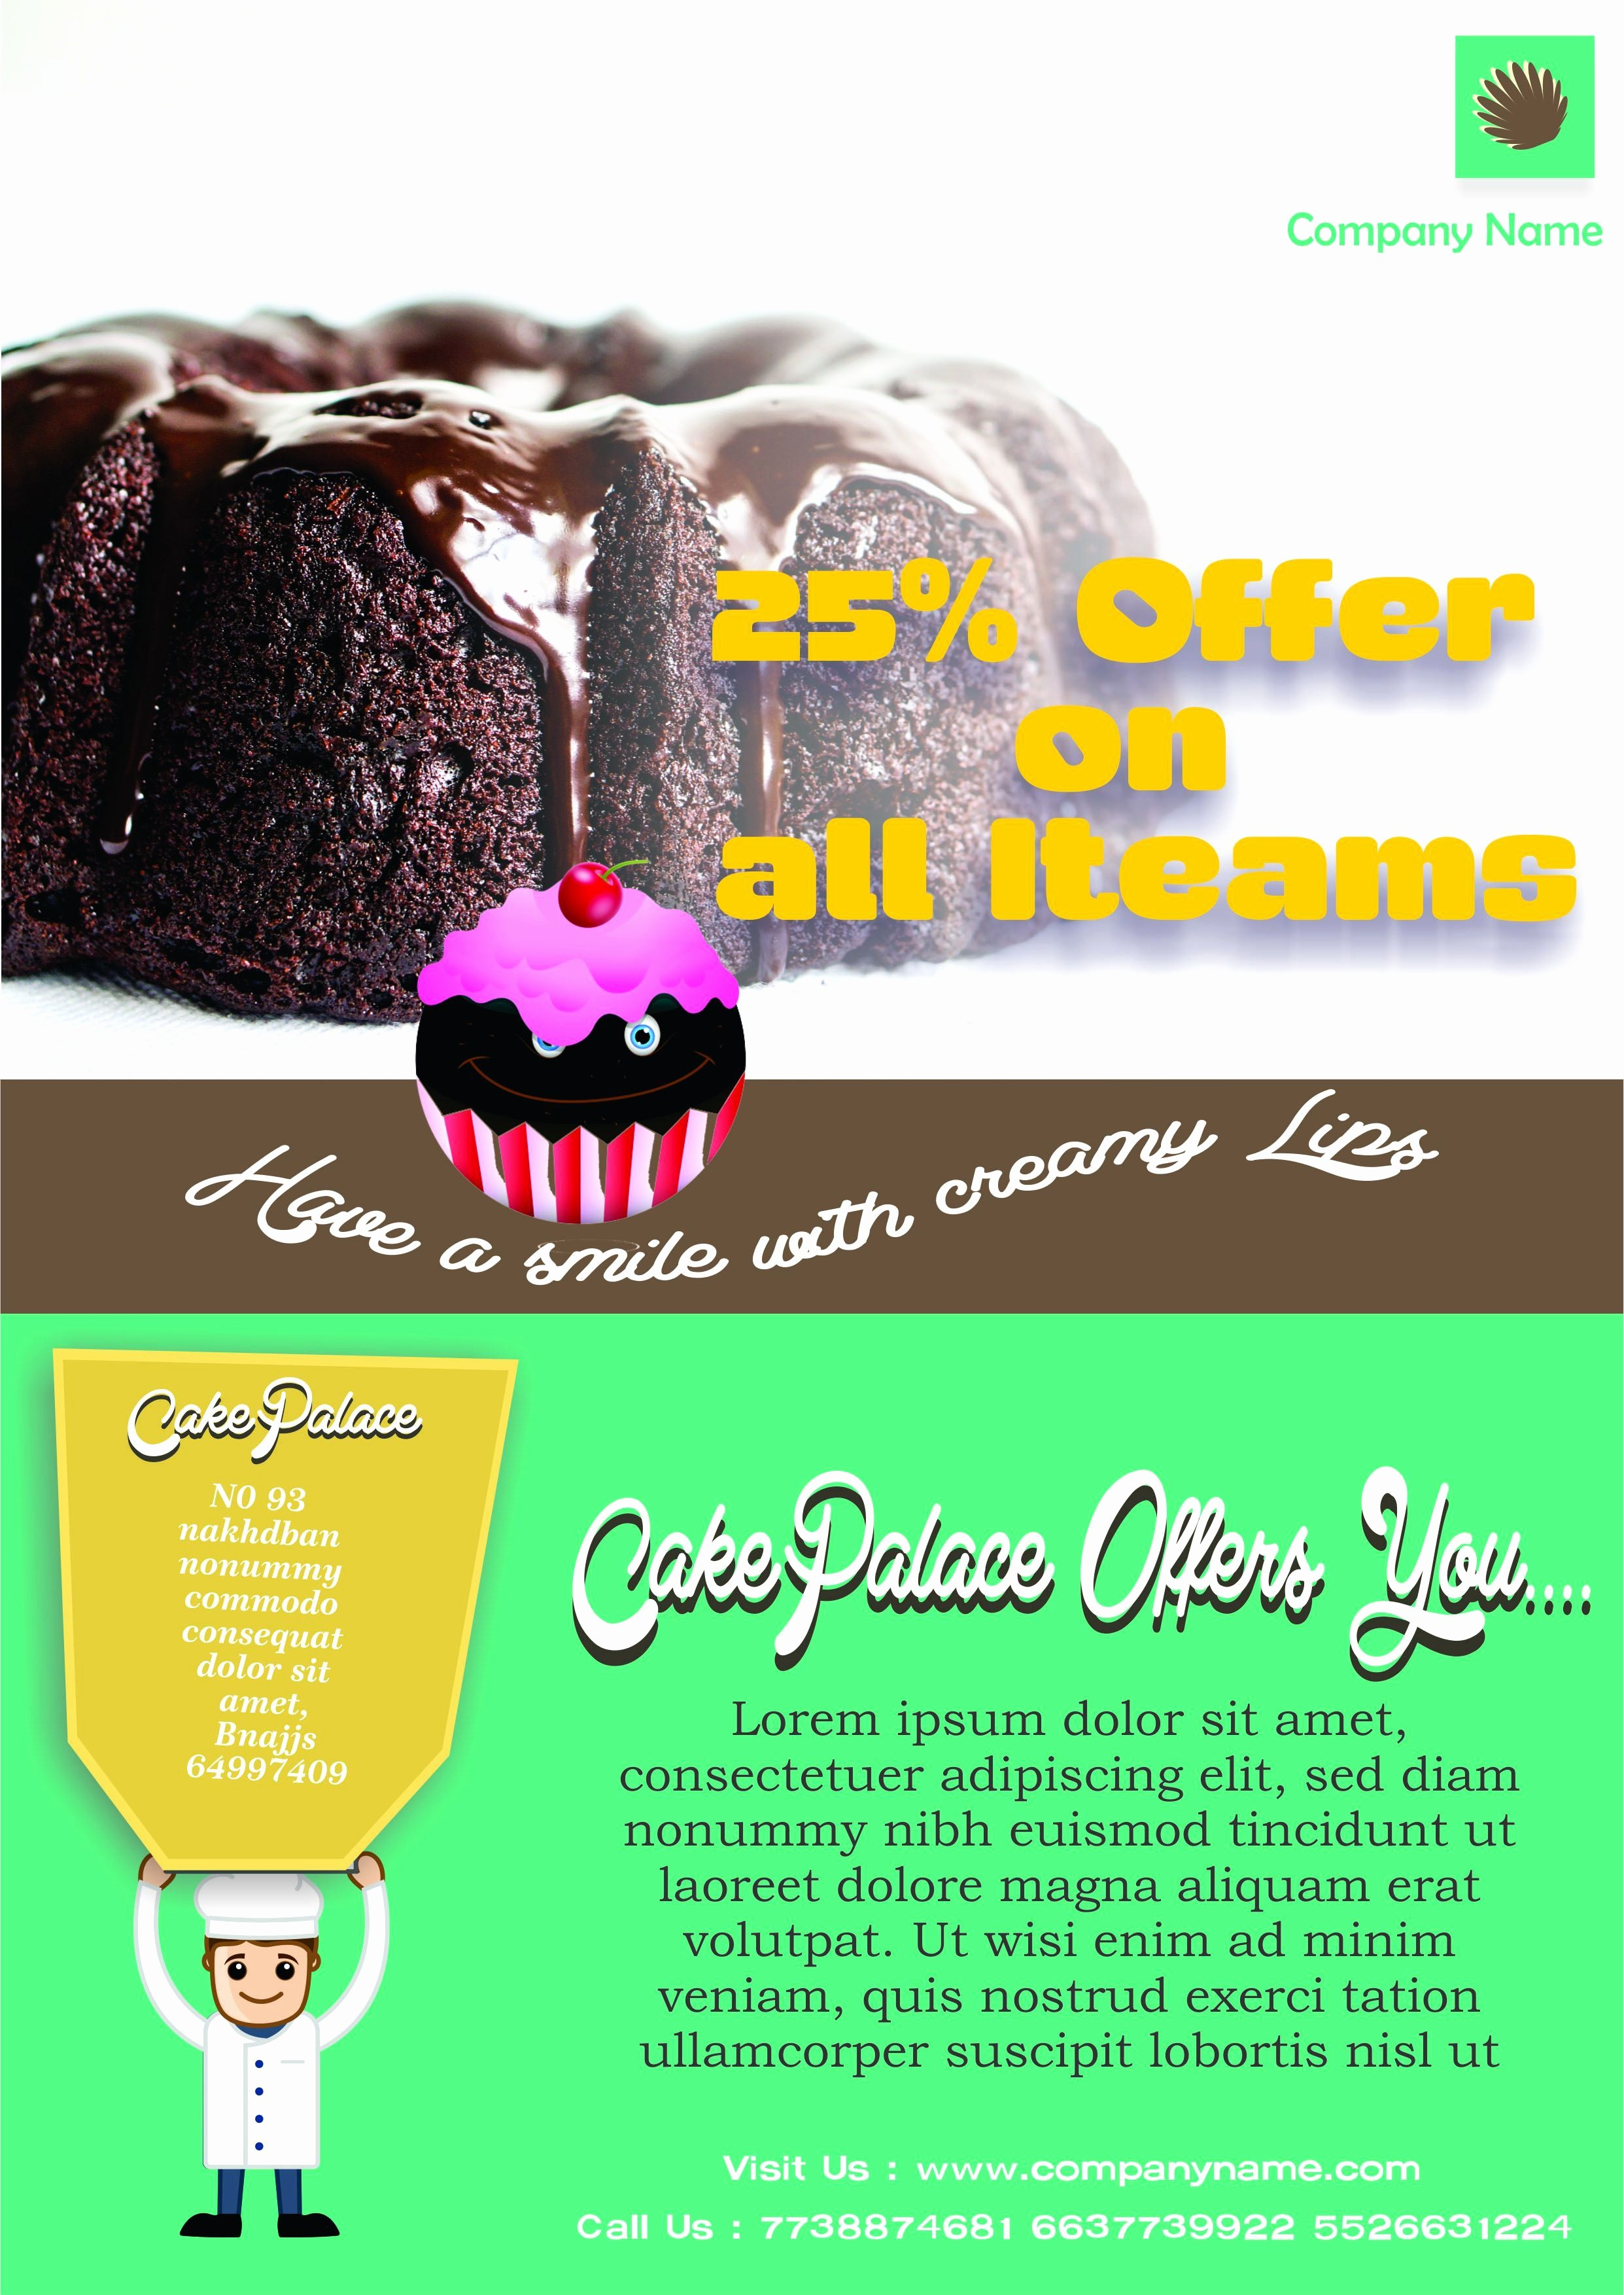 Bake Sale Template Microsoft Word Fresh Engaging Free Bake Sale Flyer Templates for Fundraising